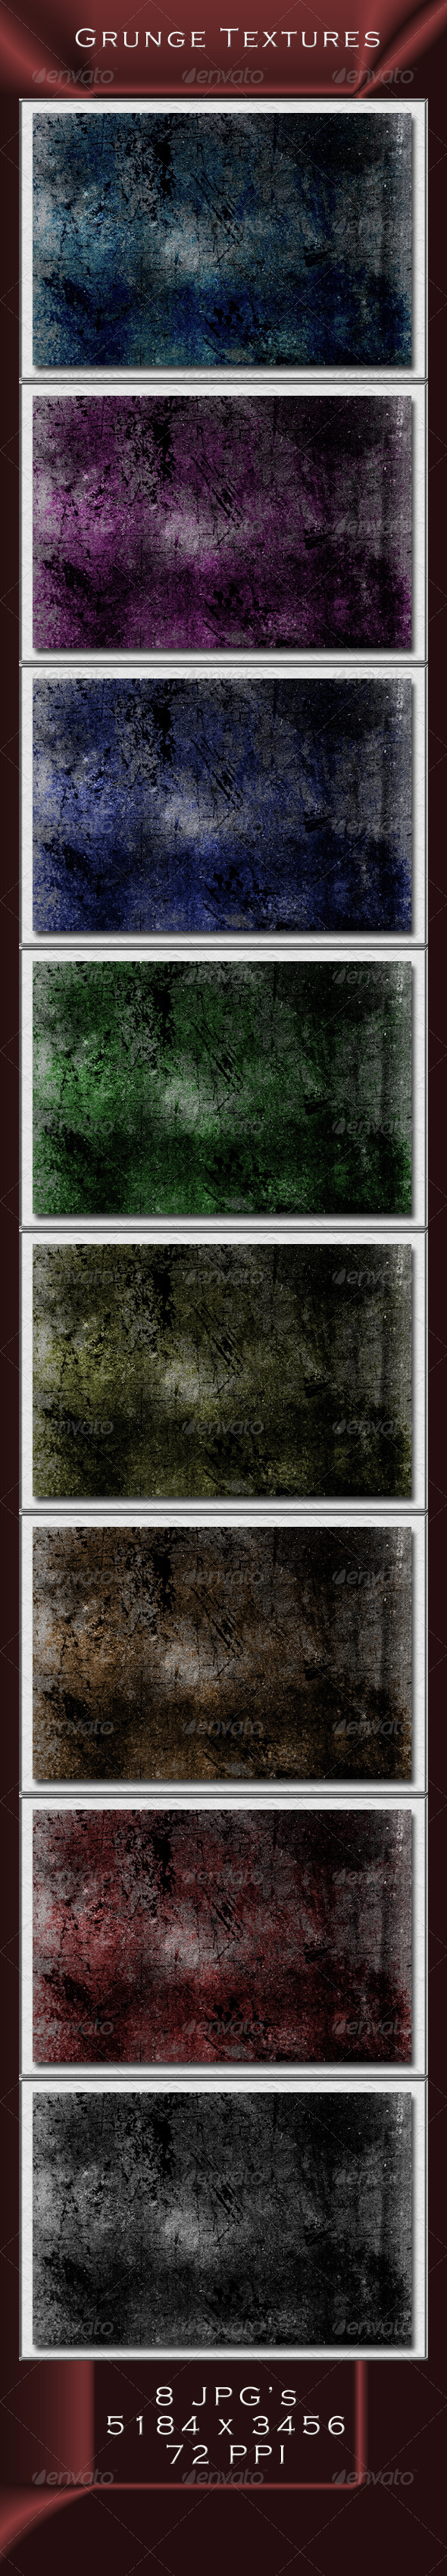 GraphicRiver Grunge Textures 4239190